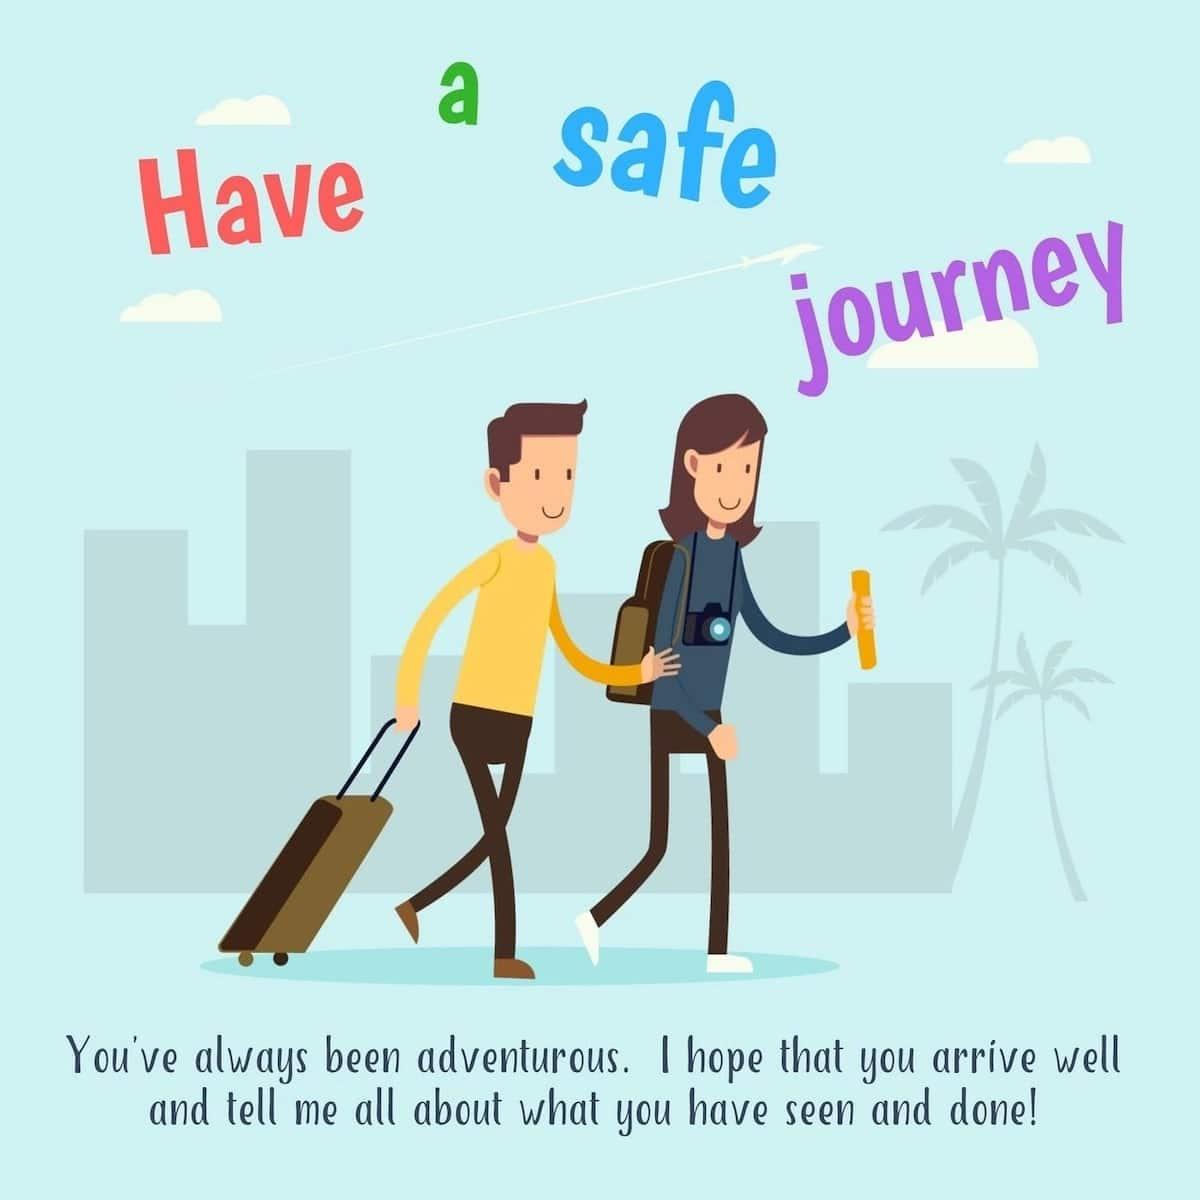 drive safely quotes, long journey quotes, journey quotes